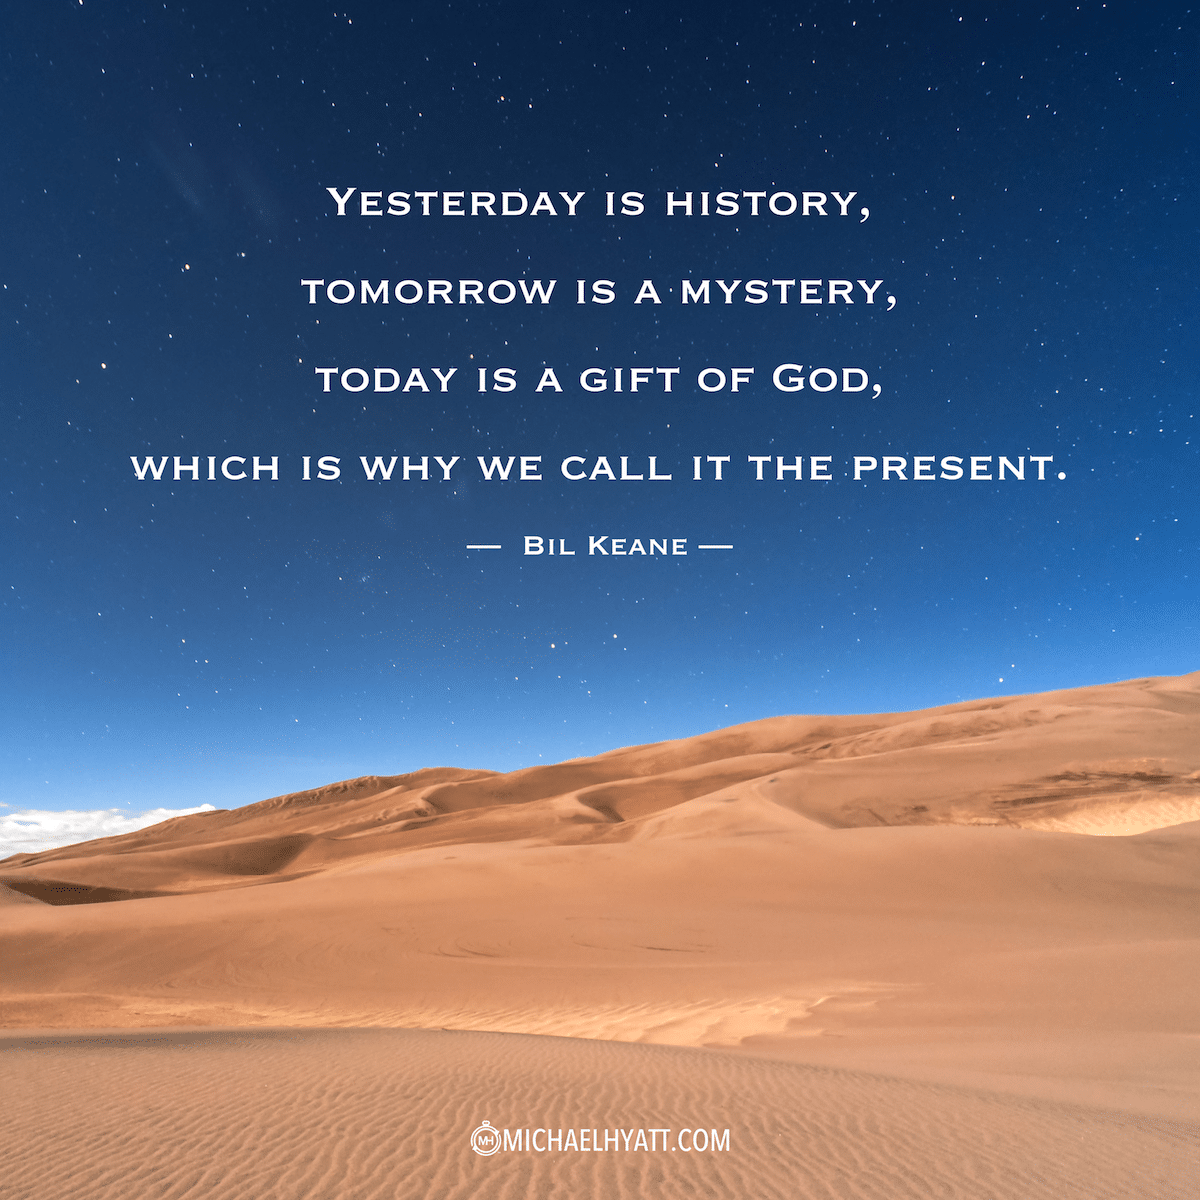 Yesterday Is History Today Is A: Shareable Images